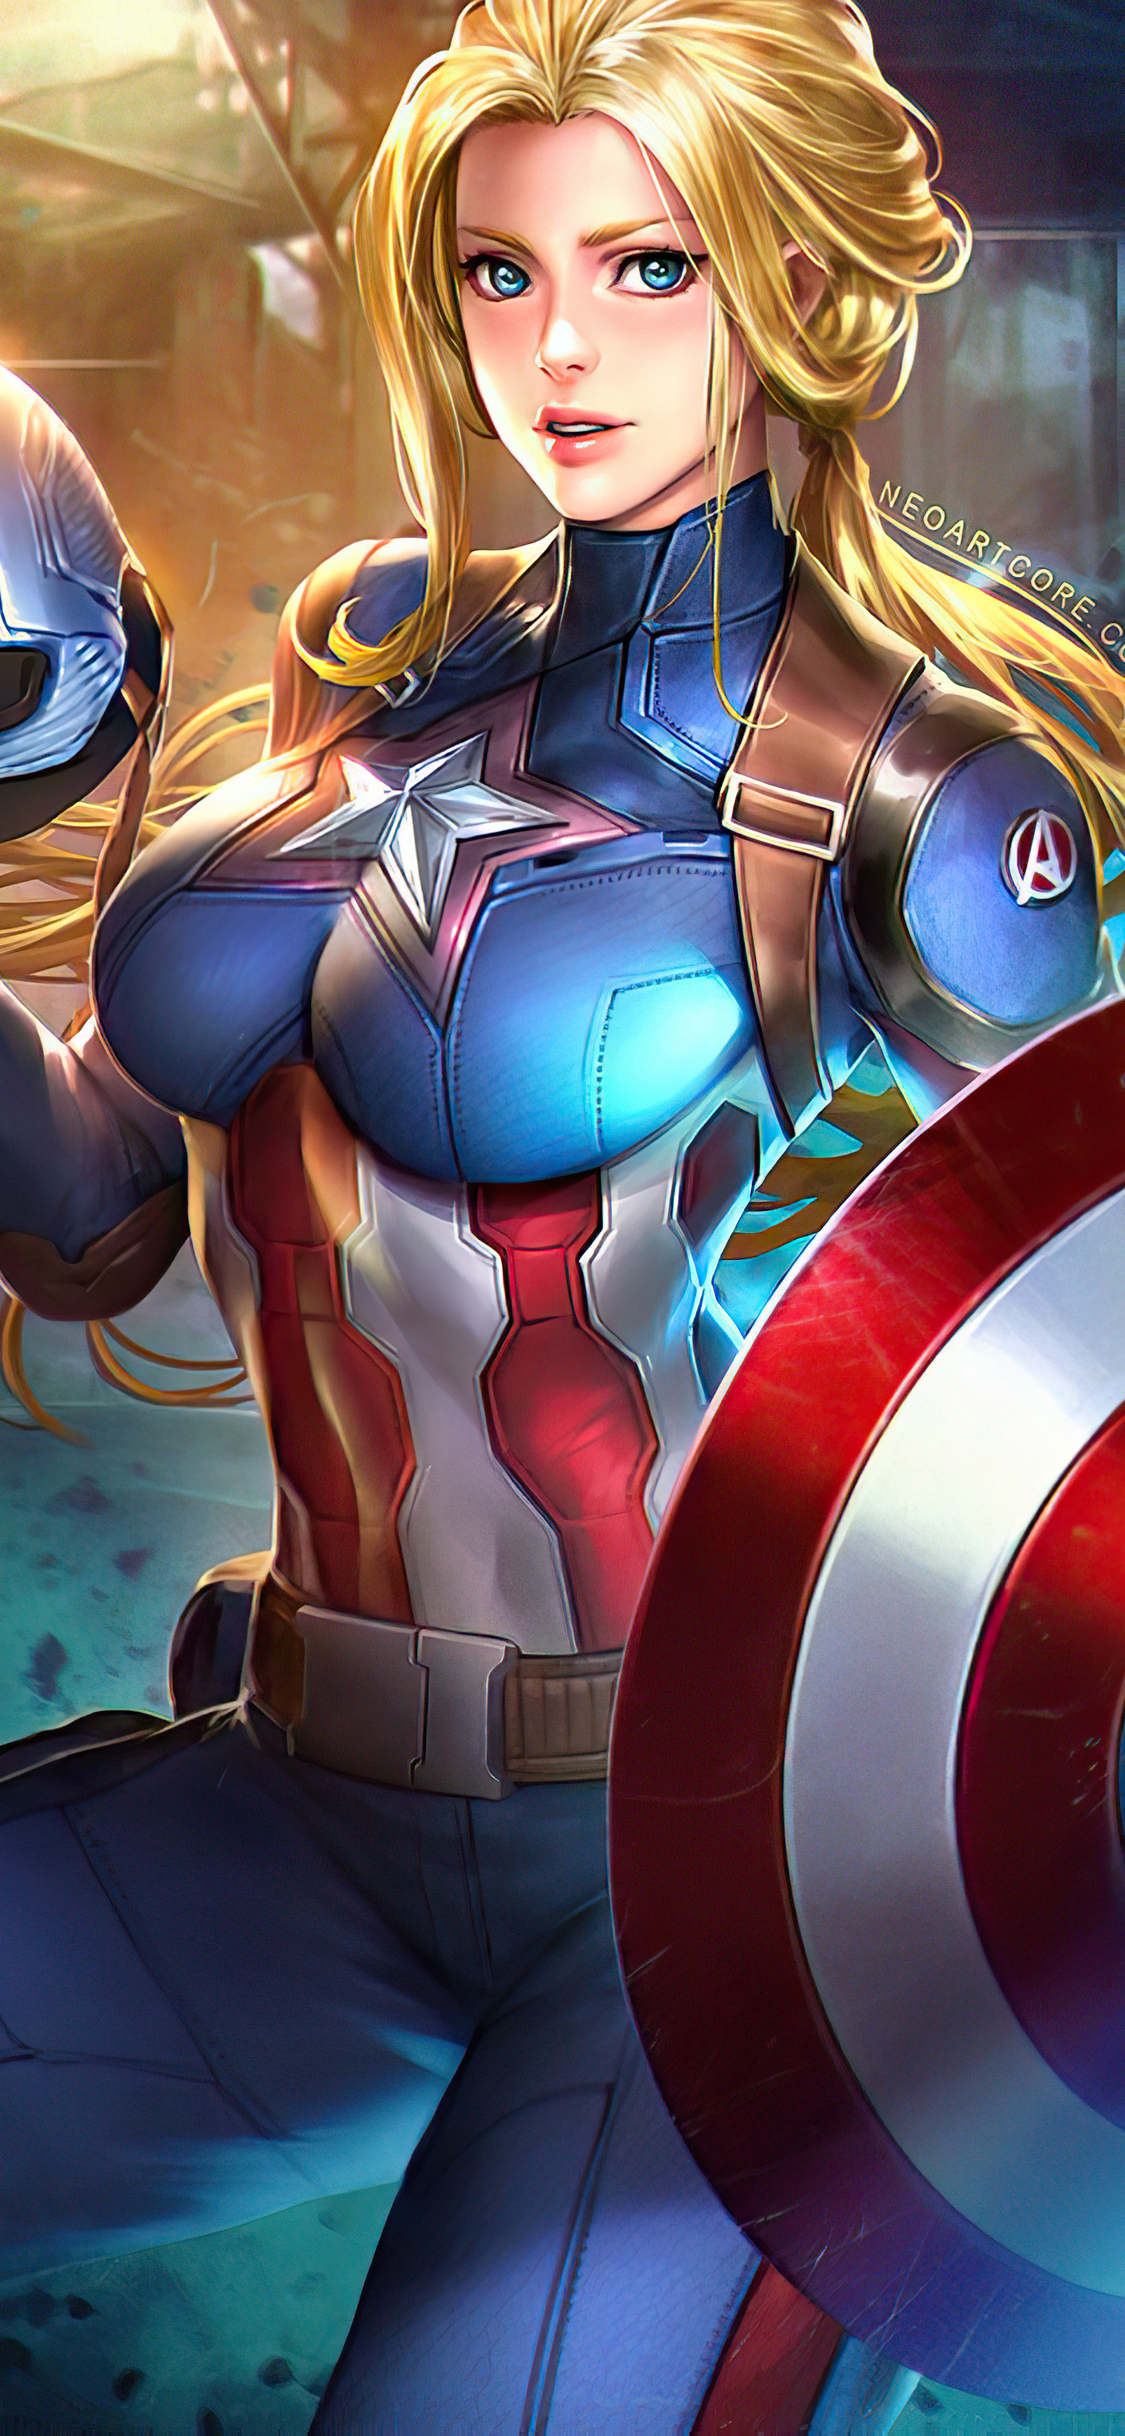 captain-america-girl-4k-2021-ms.jpg